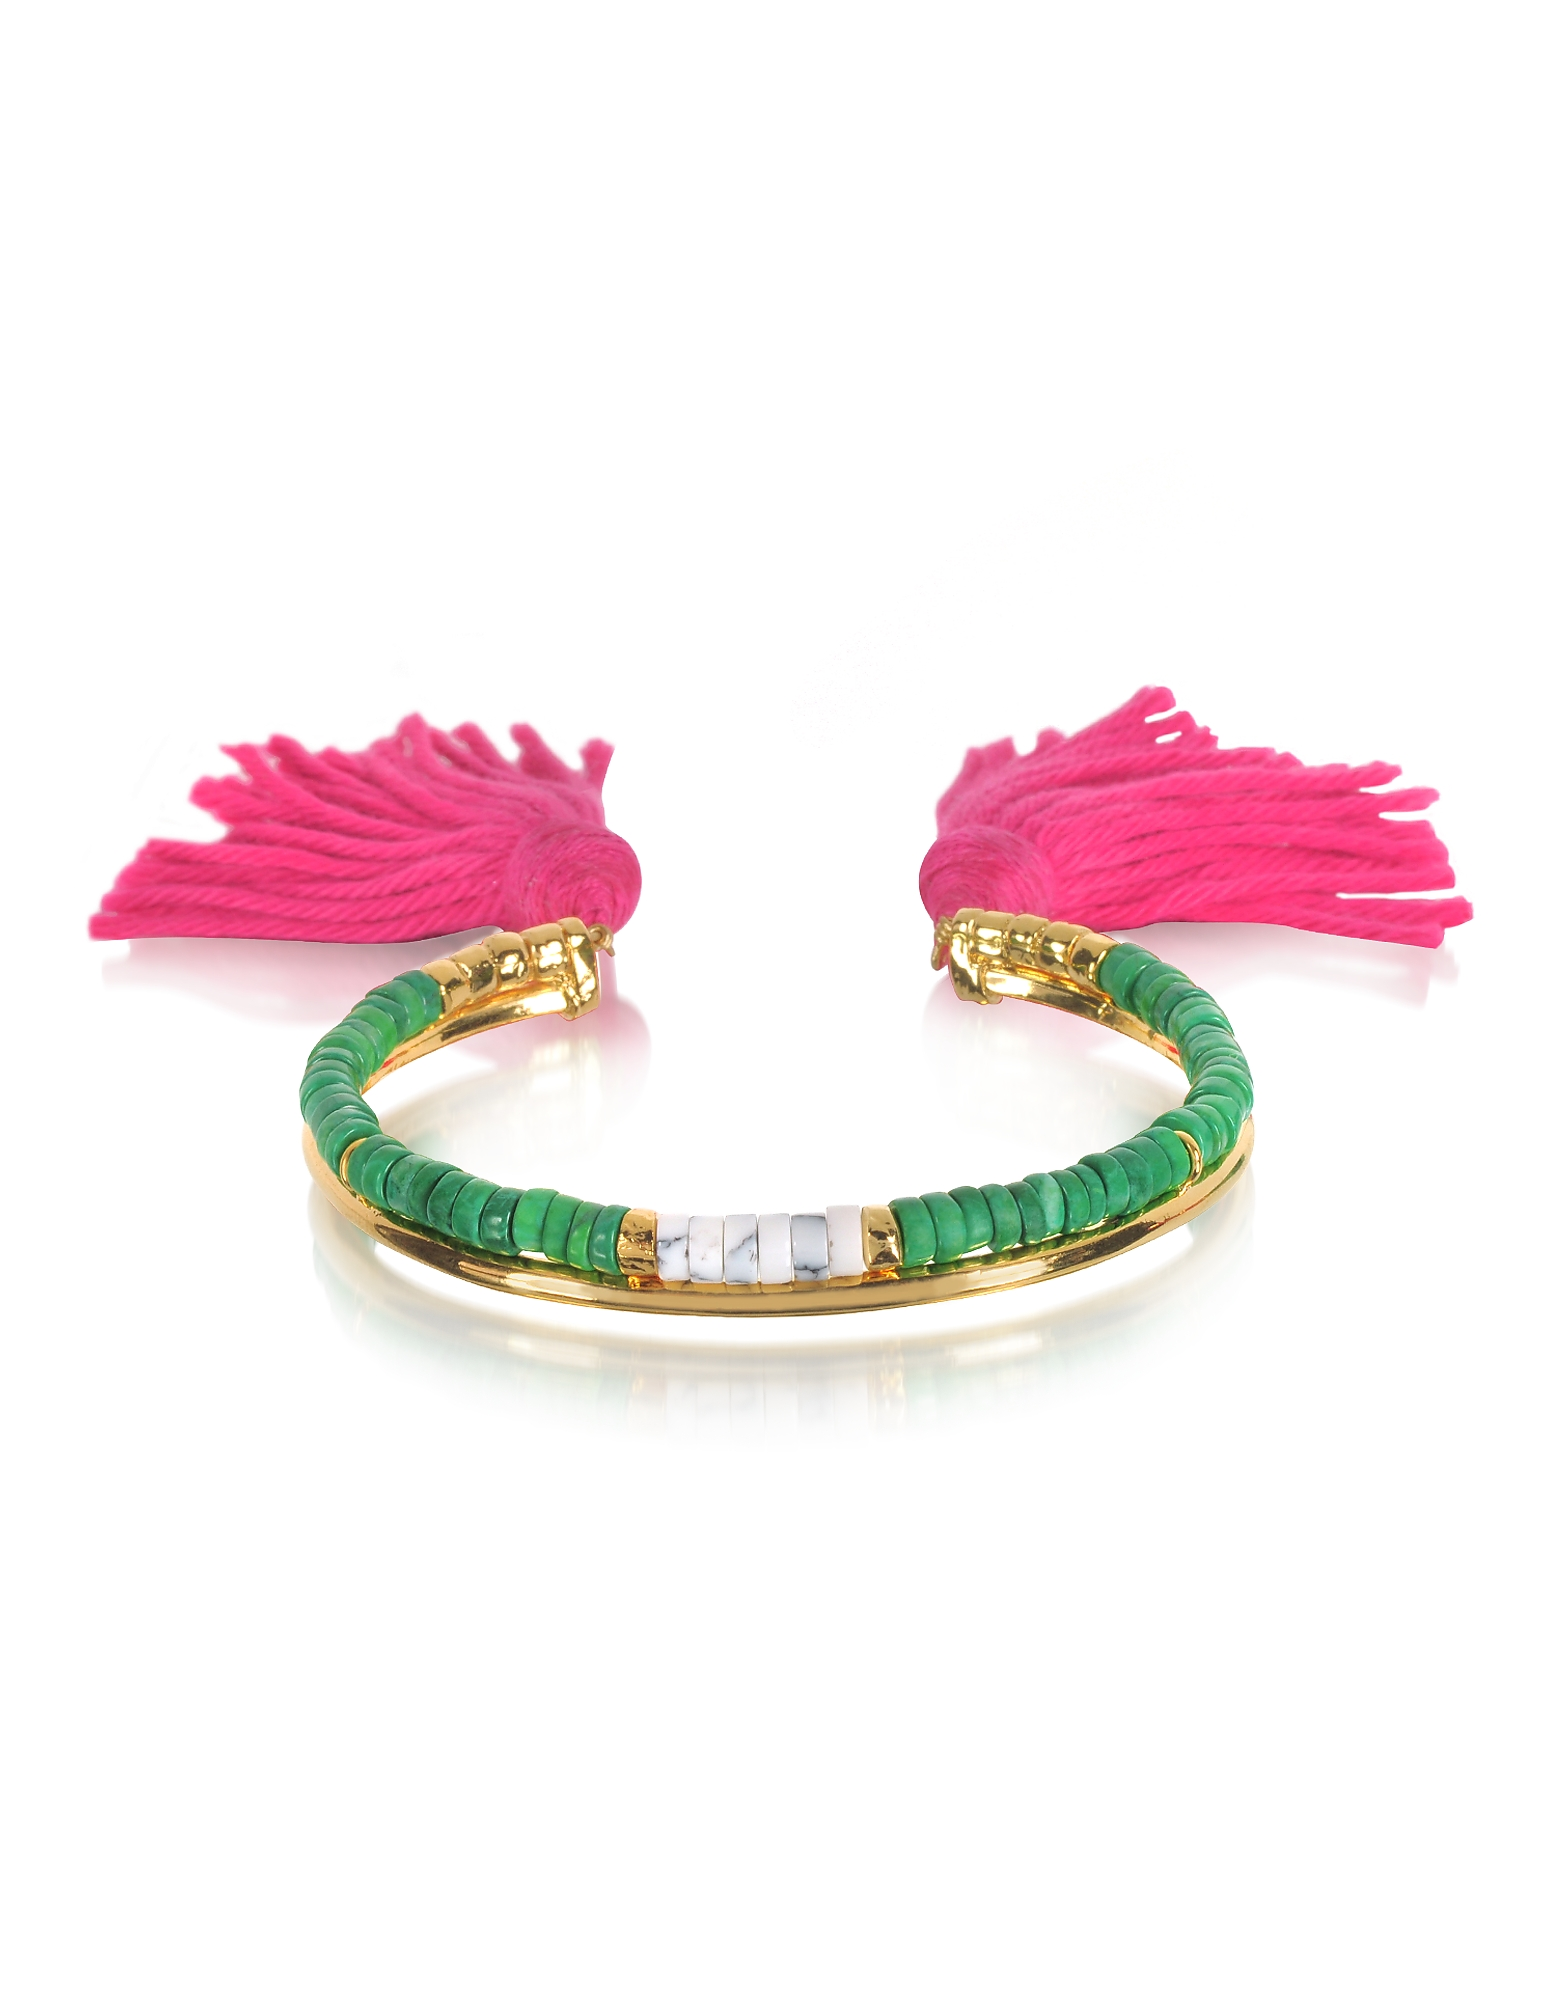 Image of Aurelie Bidermann Designer Bracelets, 18K Gold-plated & Green Jaspe and White Bamboo Beads Sioux Bracelet w/Pink Cotton Tassels